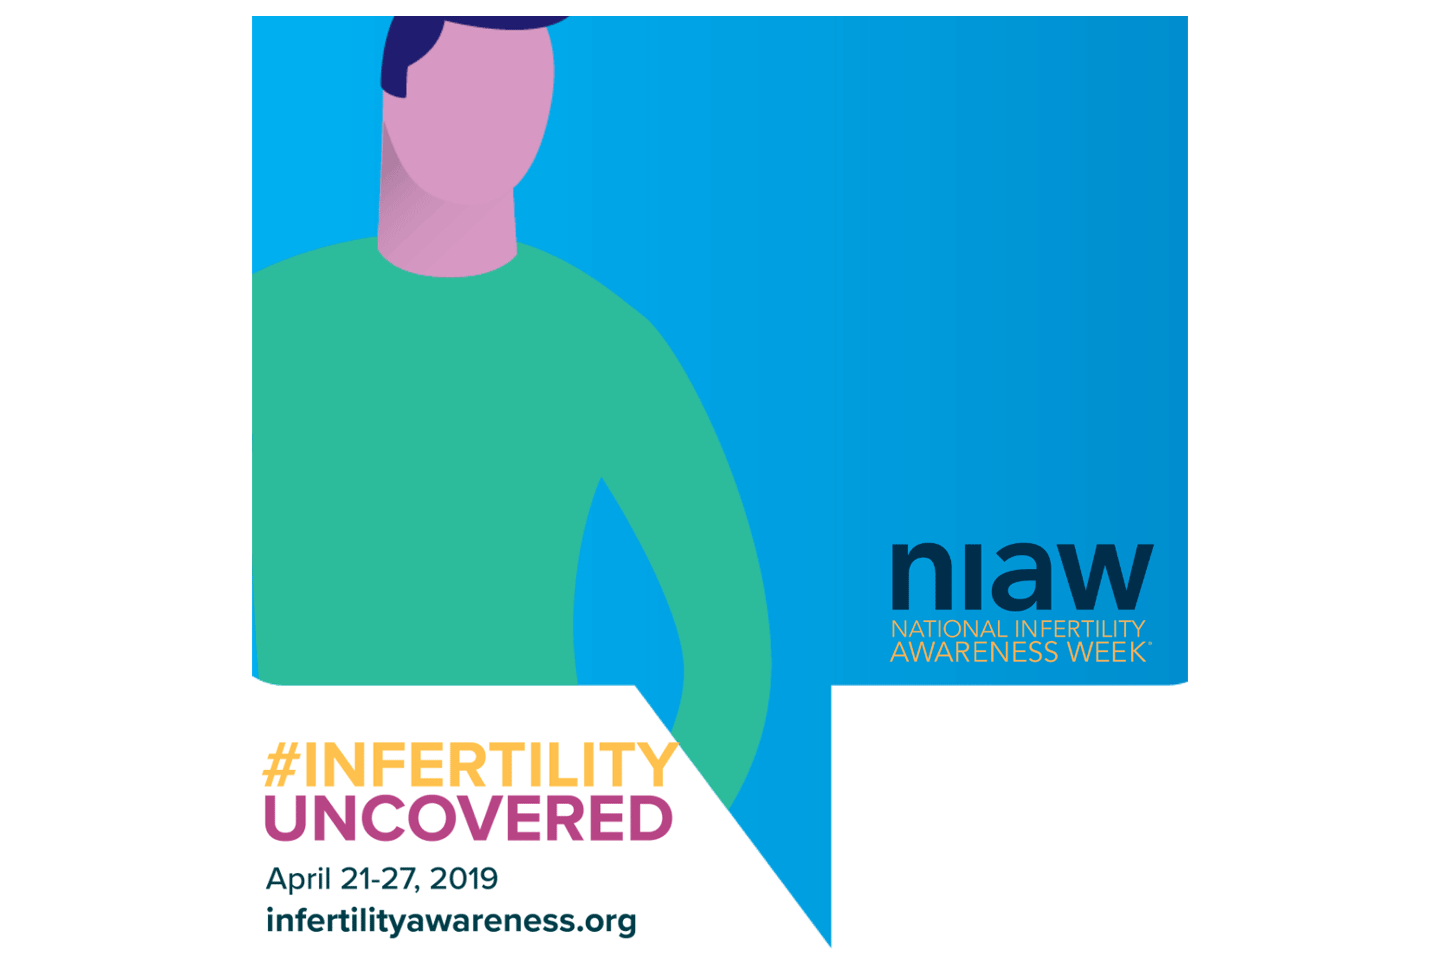 NIAW: National Infertility Awareness Week; #infertilityuncovered April 21-27, 2019 infertilityawareness.org